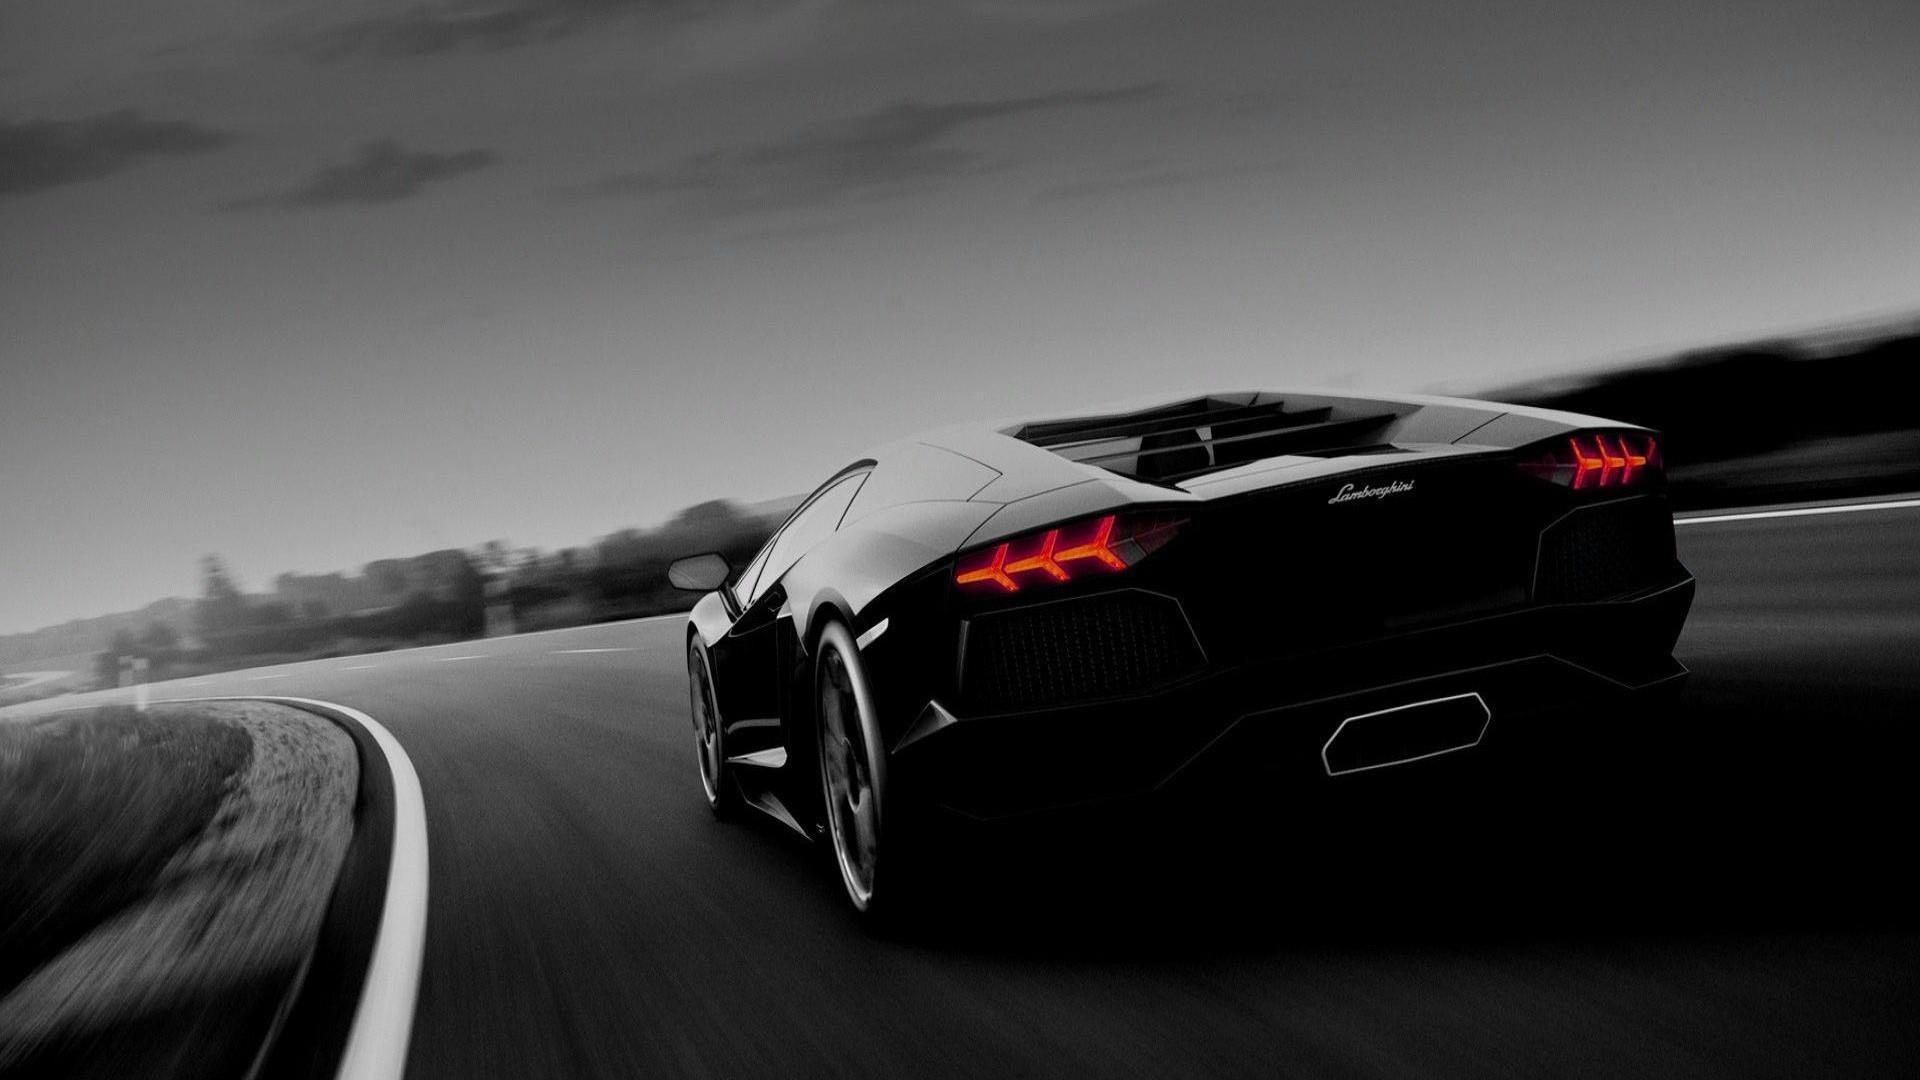 Black Lambo Wallpapers , Top Free Black Lambo Backgrounds